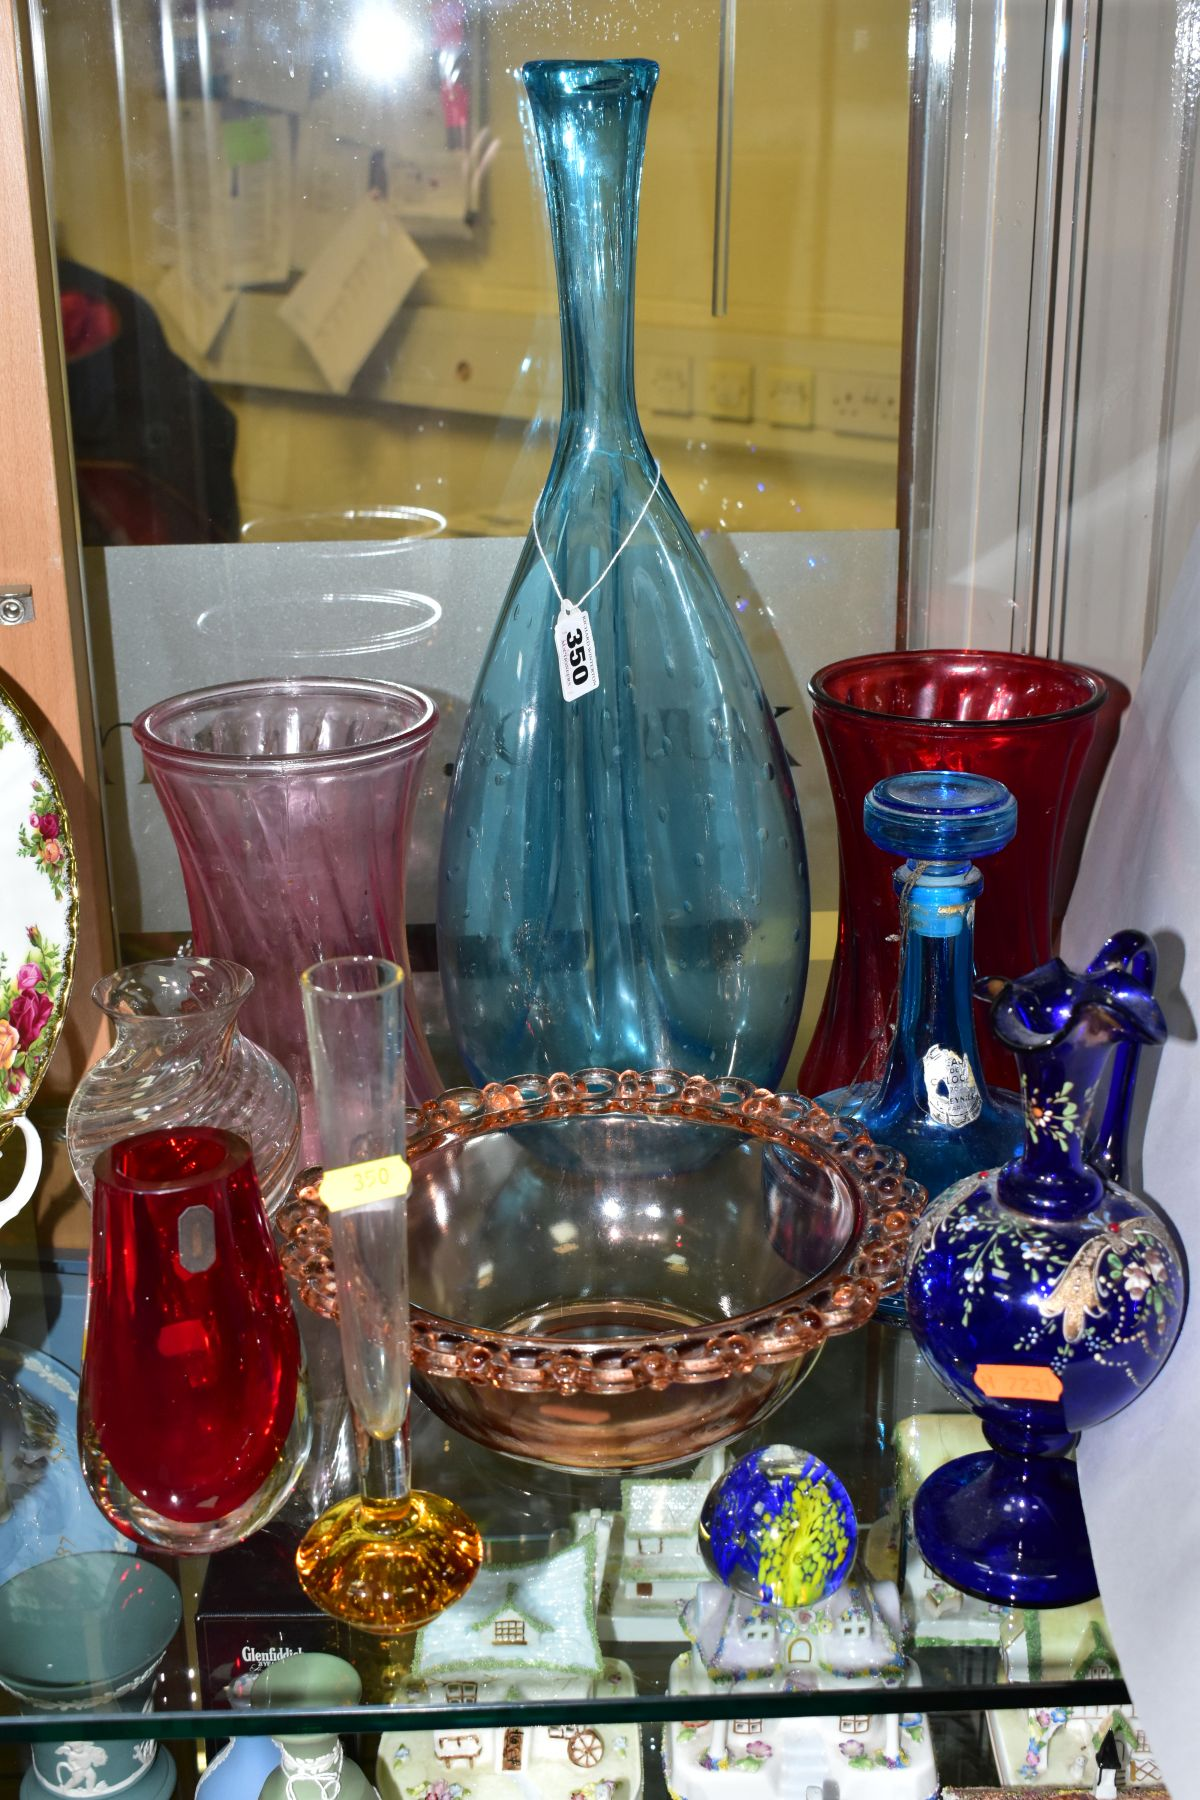 TEN PIECES OF COLOURED GLASSWARE including a blue glass vase of triform shape, with bubble